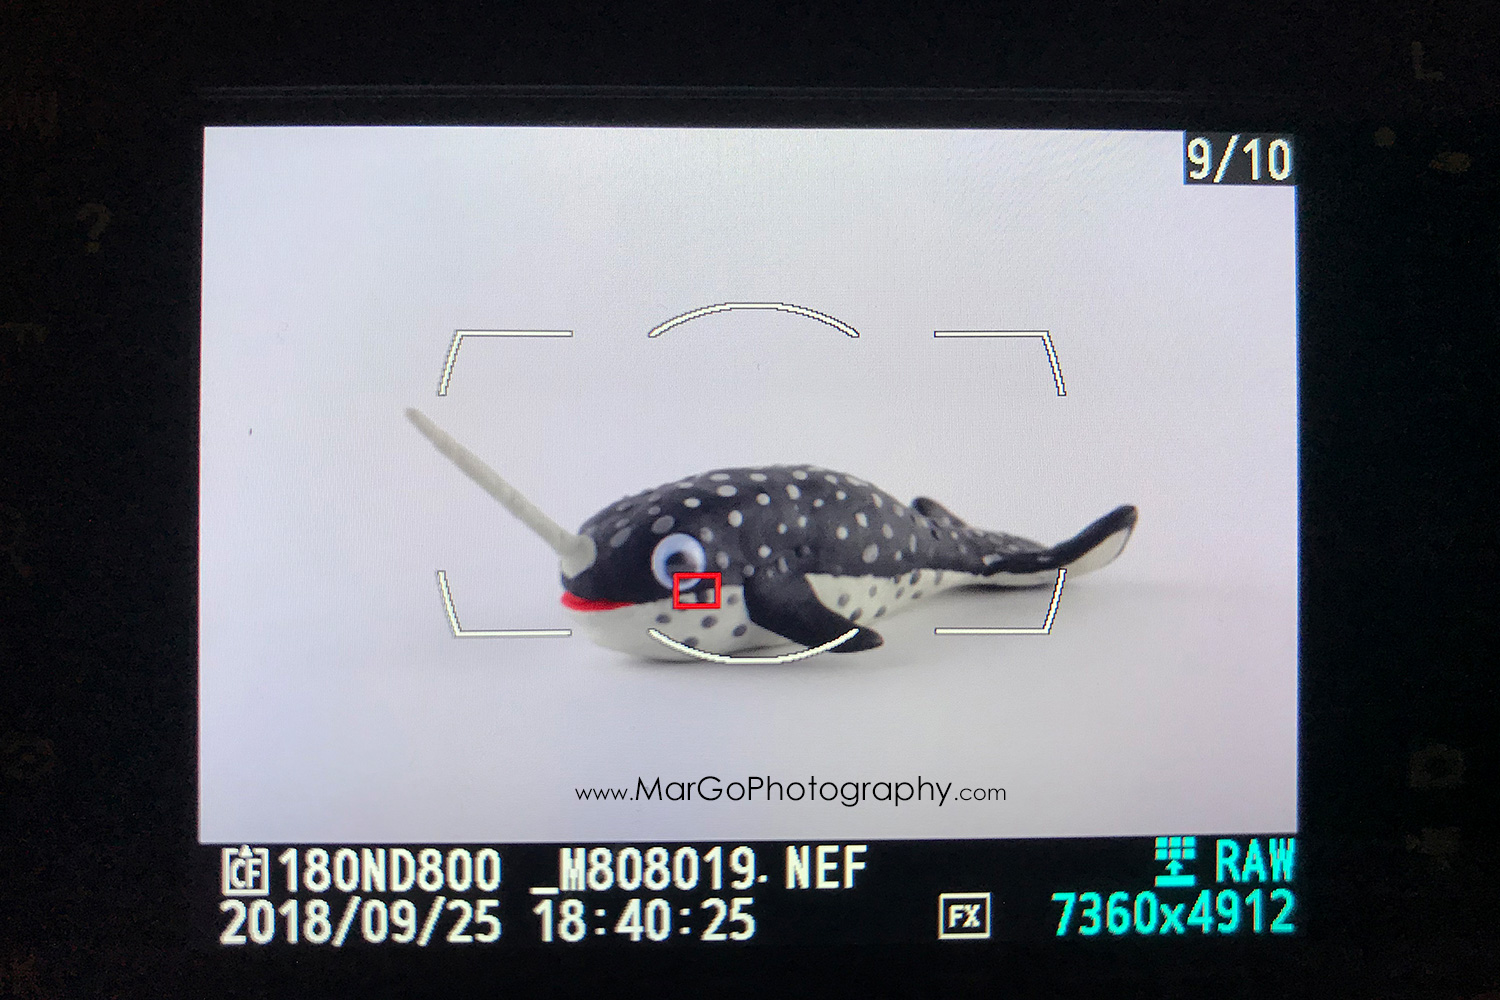 photo of grey clay narwhal on camera LCD screen